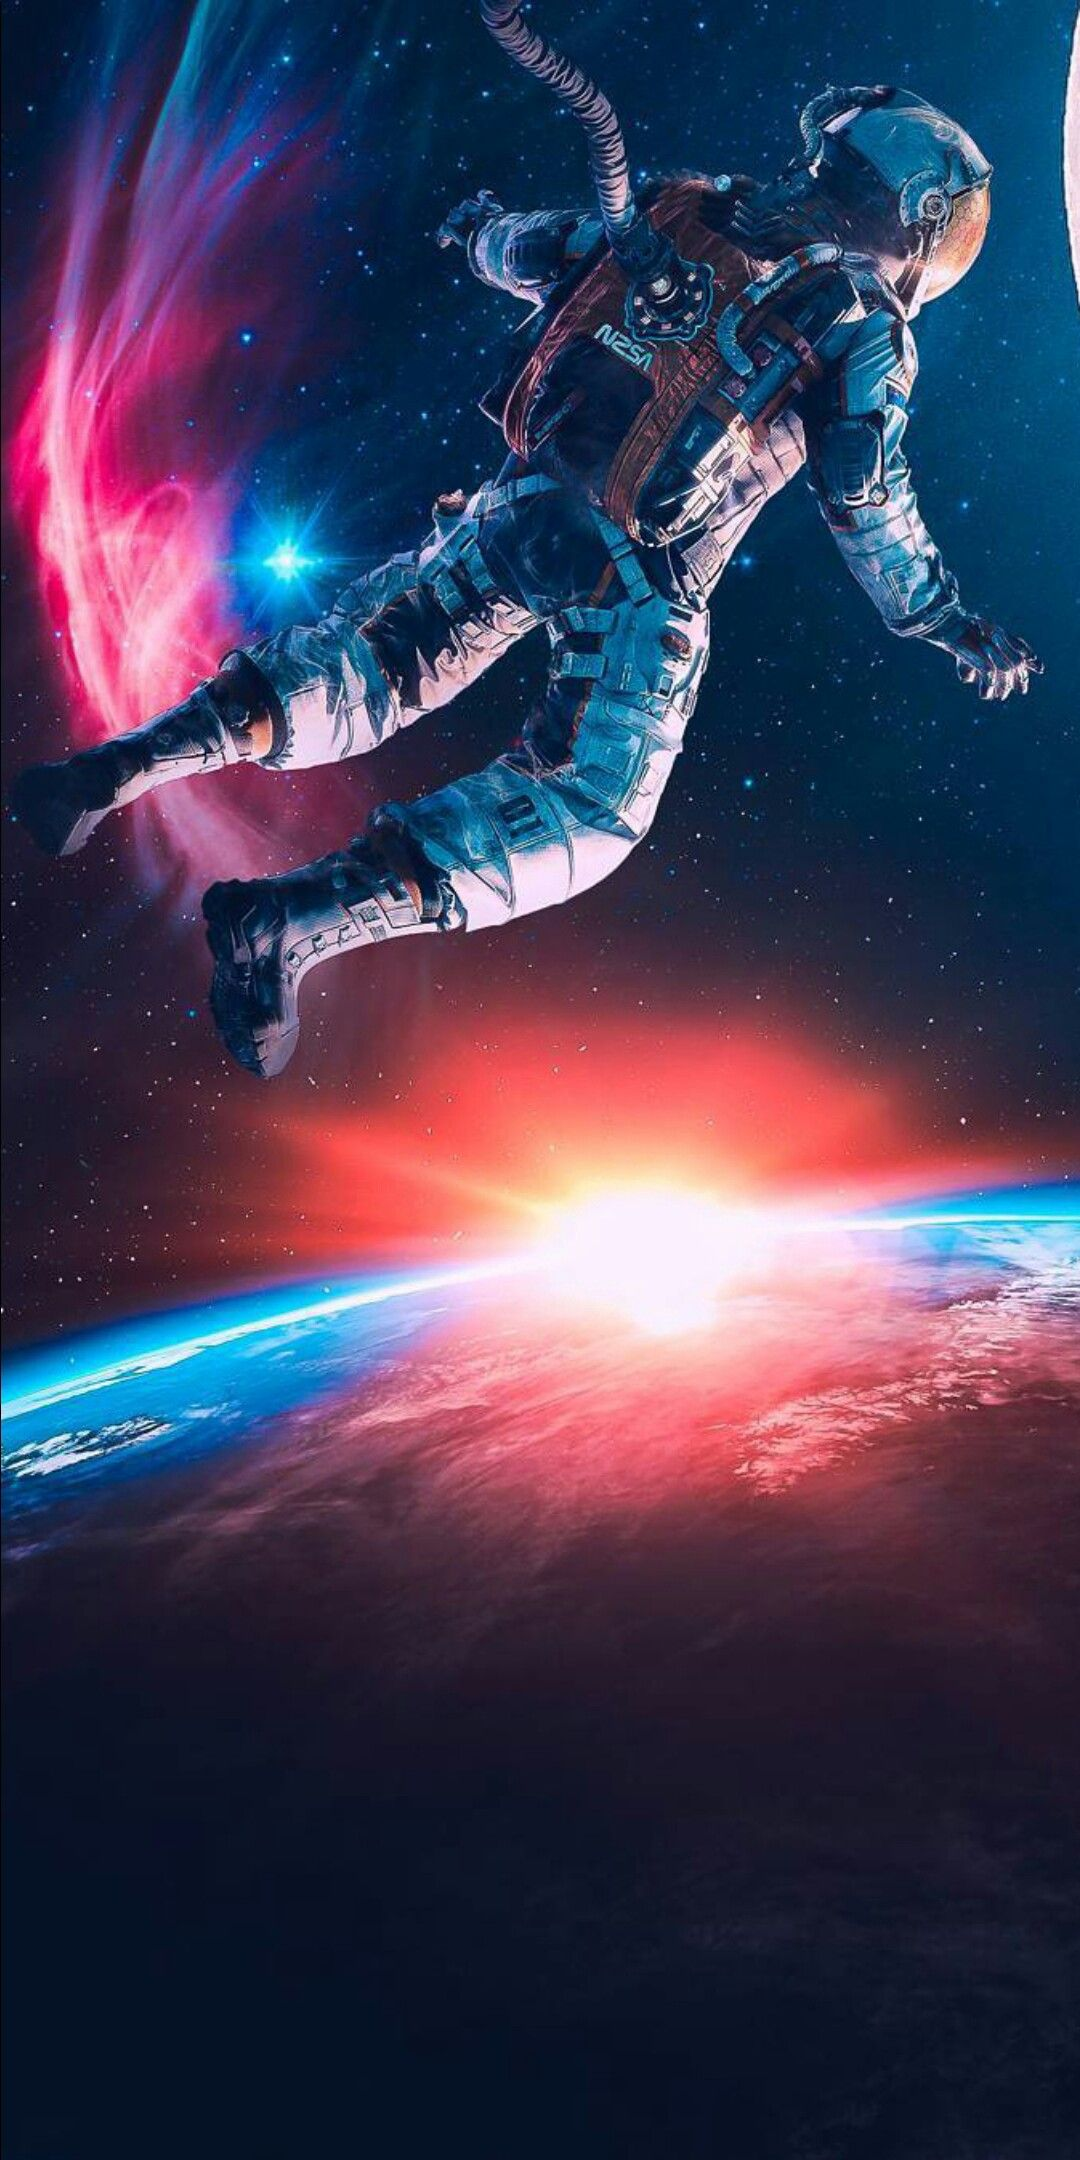 Space Cowboys With Images Astronaut Wallpaper Space Artwork Space Art